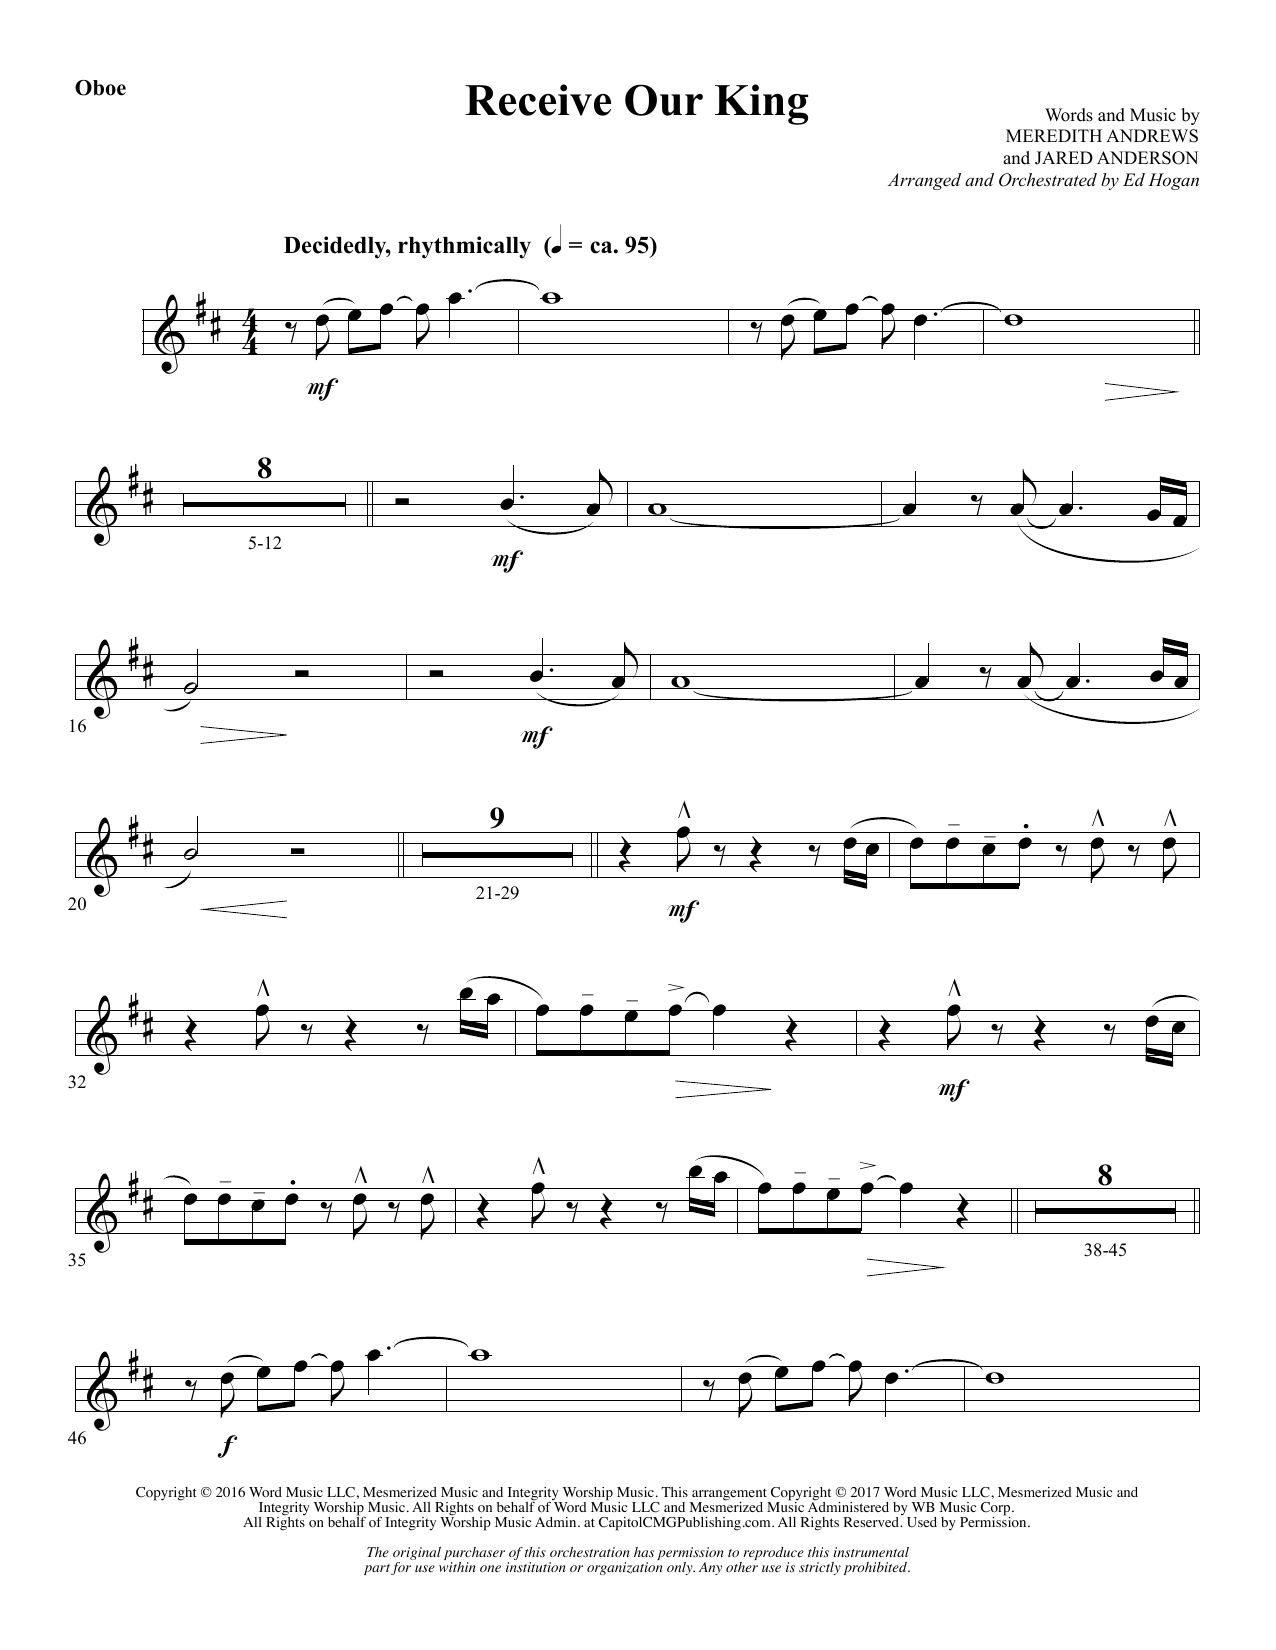 Ed Hogan Receive Our King - Oboe sheet music notes and chords. Download Printable PDF.